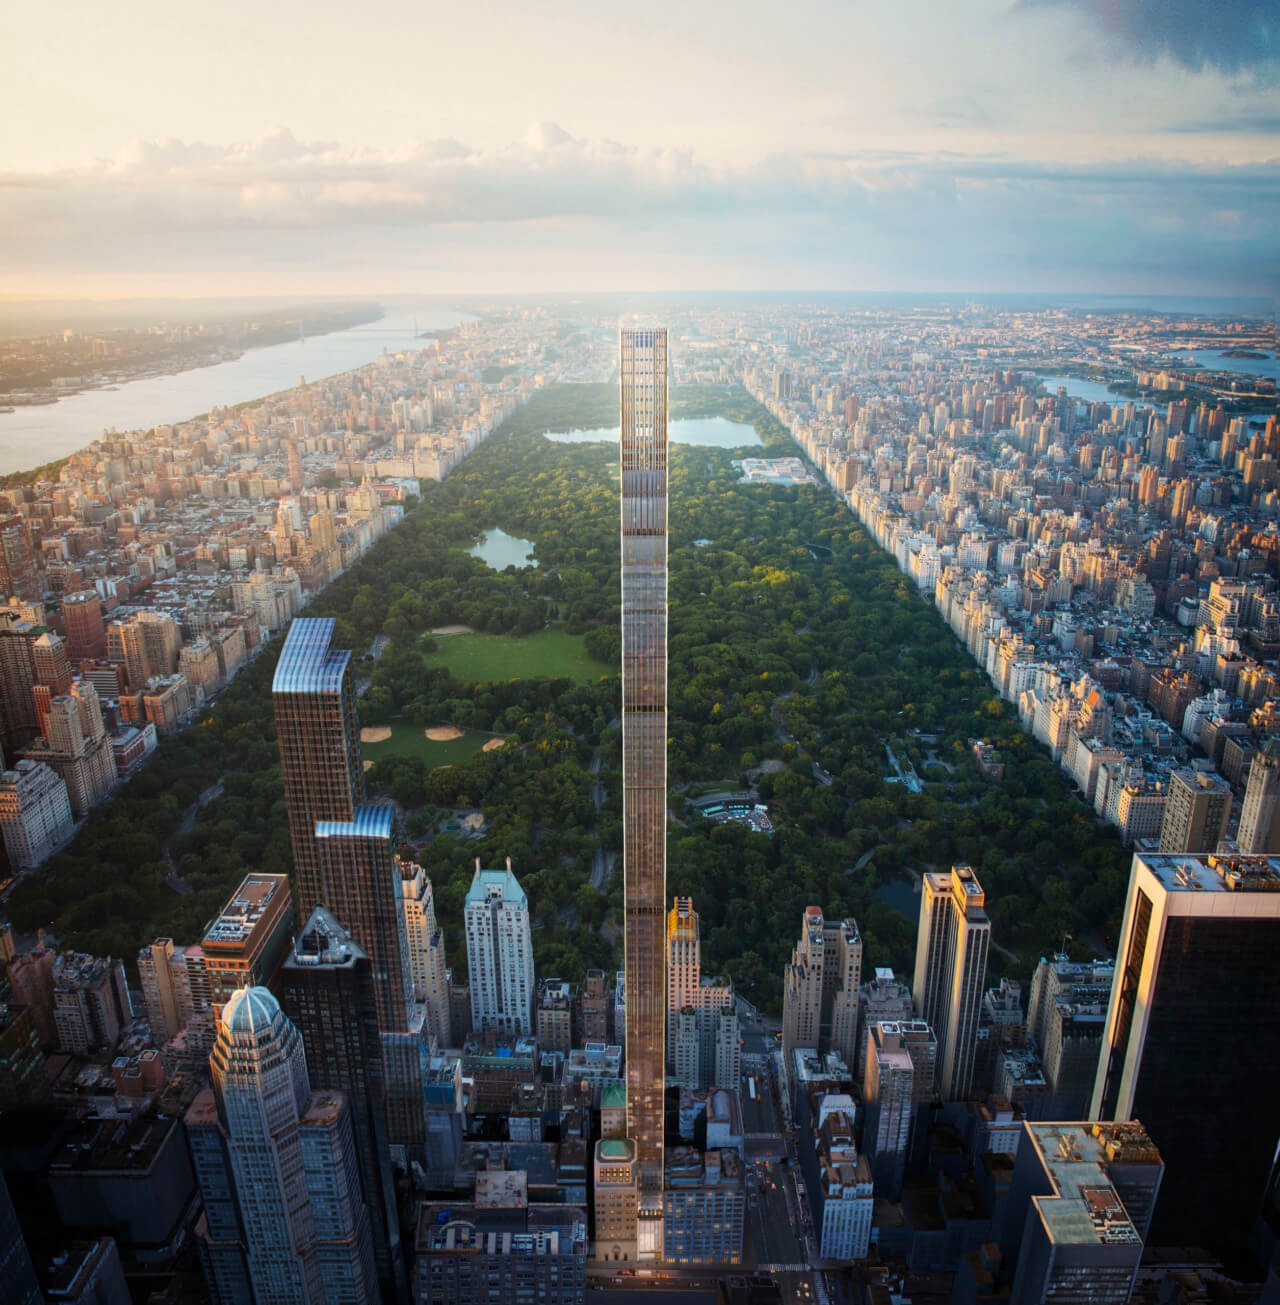 rendering of 111 west 5th street, a pencil-thin tower looming over central park